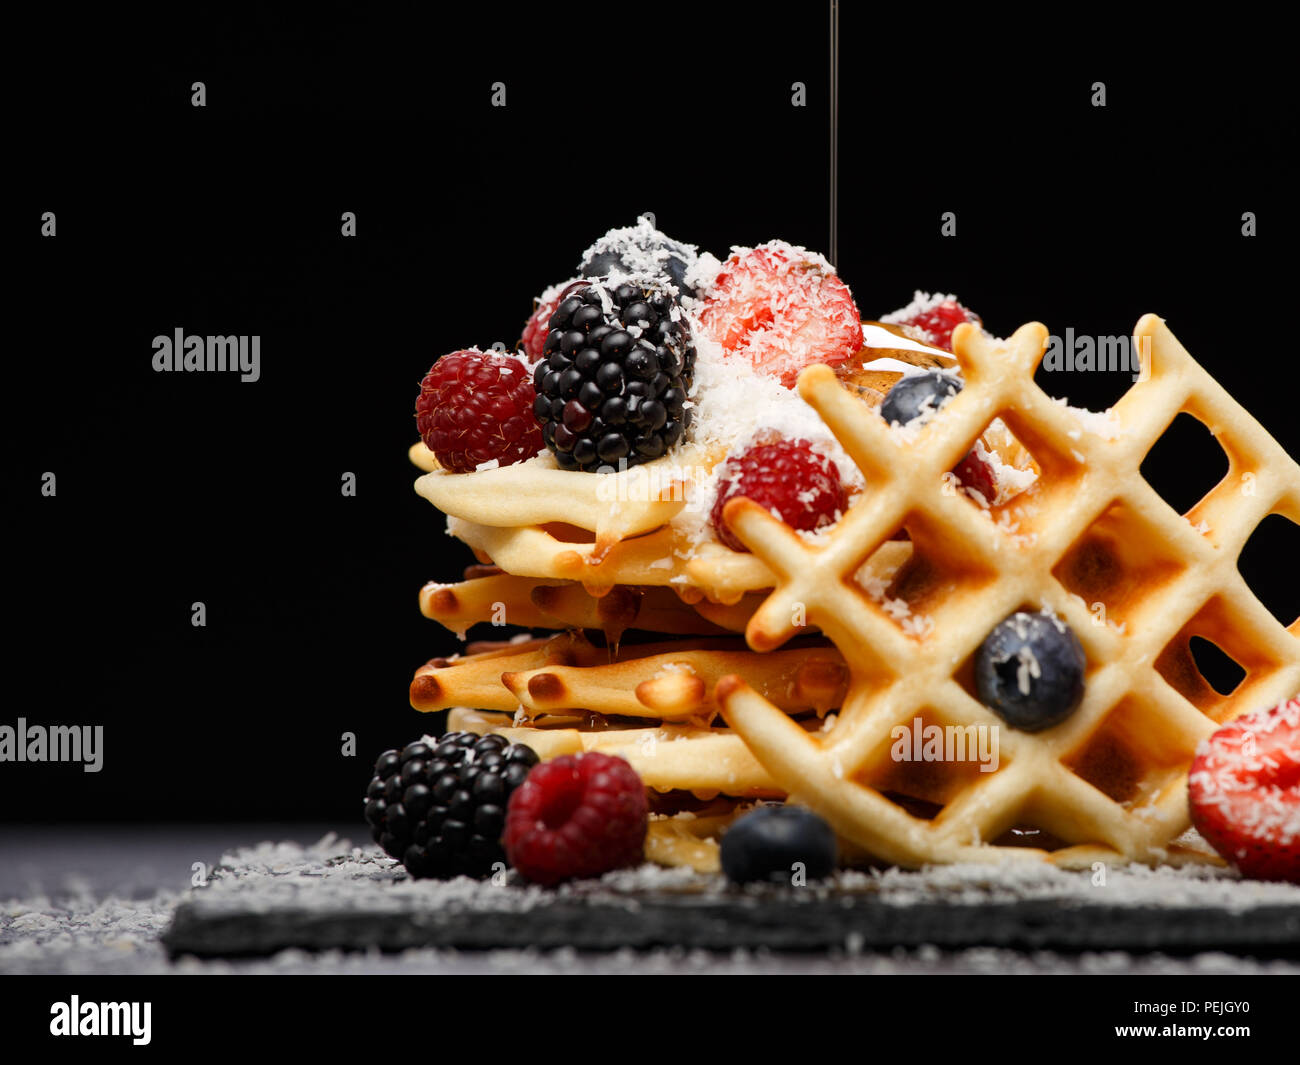 Photo of Belgian wafers with berries - Stock Image